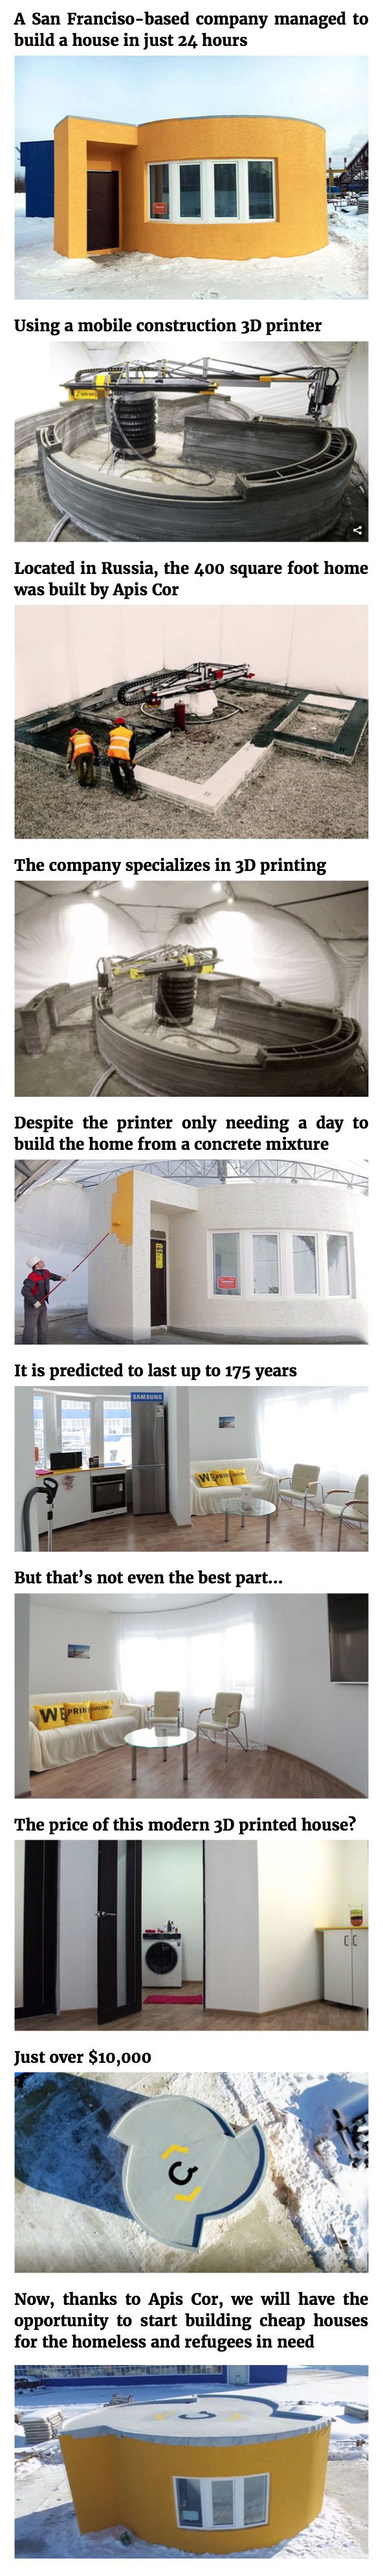 Typically, building a house takes months. Yet a San Franciso-based company managed to build one in just 24 hours. Located in Russia, the 400 square foot home was built by Apis Cor. The company specializes in 3D printing, and thanks to their mobile construction 3D printer that is capable of printing buildings, they managed to print a whole house in just 24 hours! Despite the printer only needing a day to build the home from a concrete mixture, it is predicted to last up to 175 years… But…